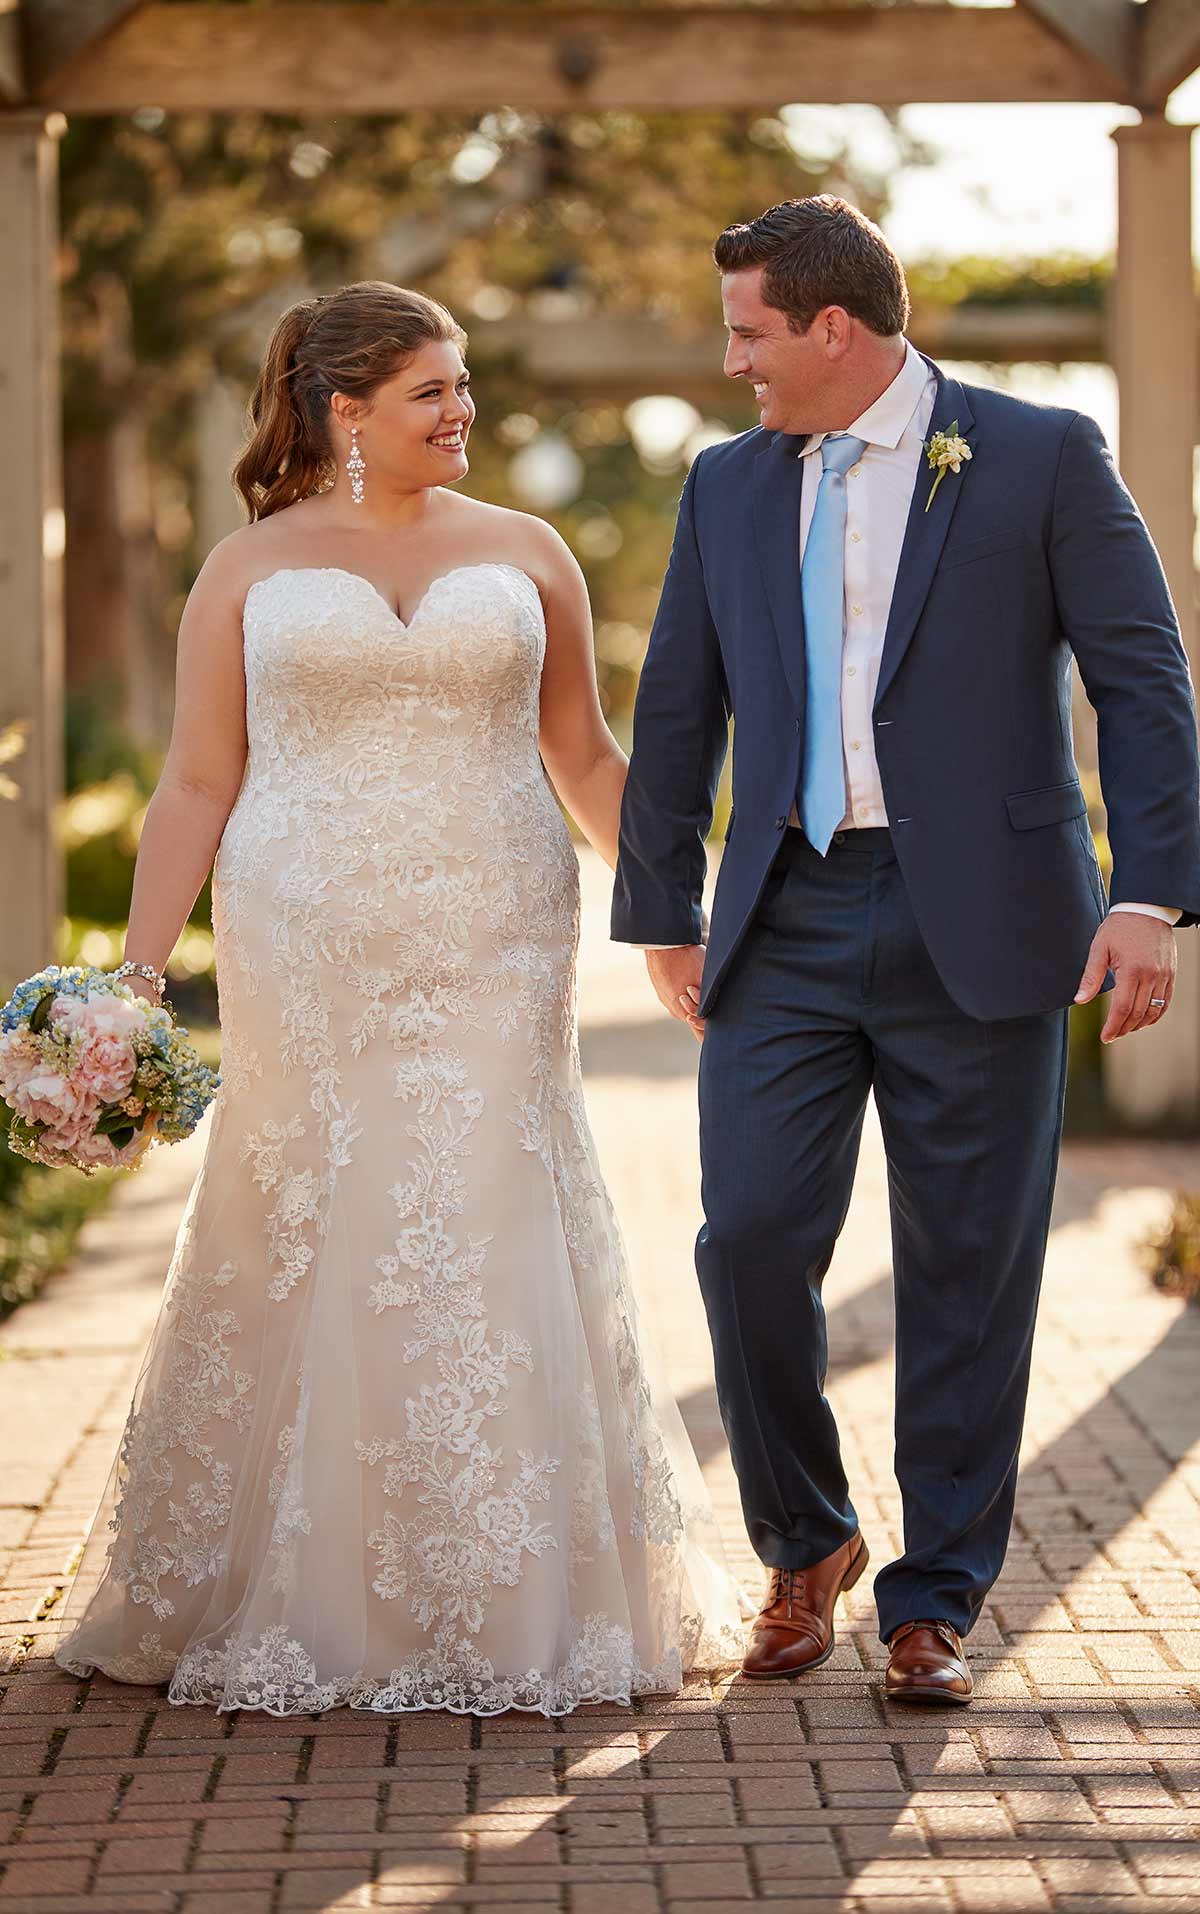 plus-sized bride wearing fit and flare gown with sweetheart neckline